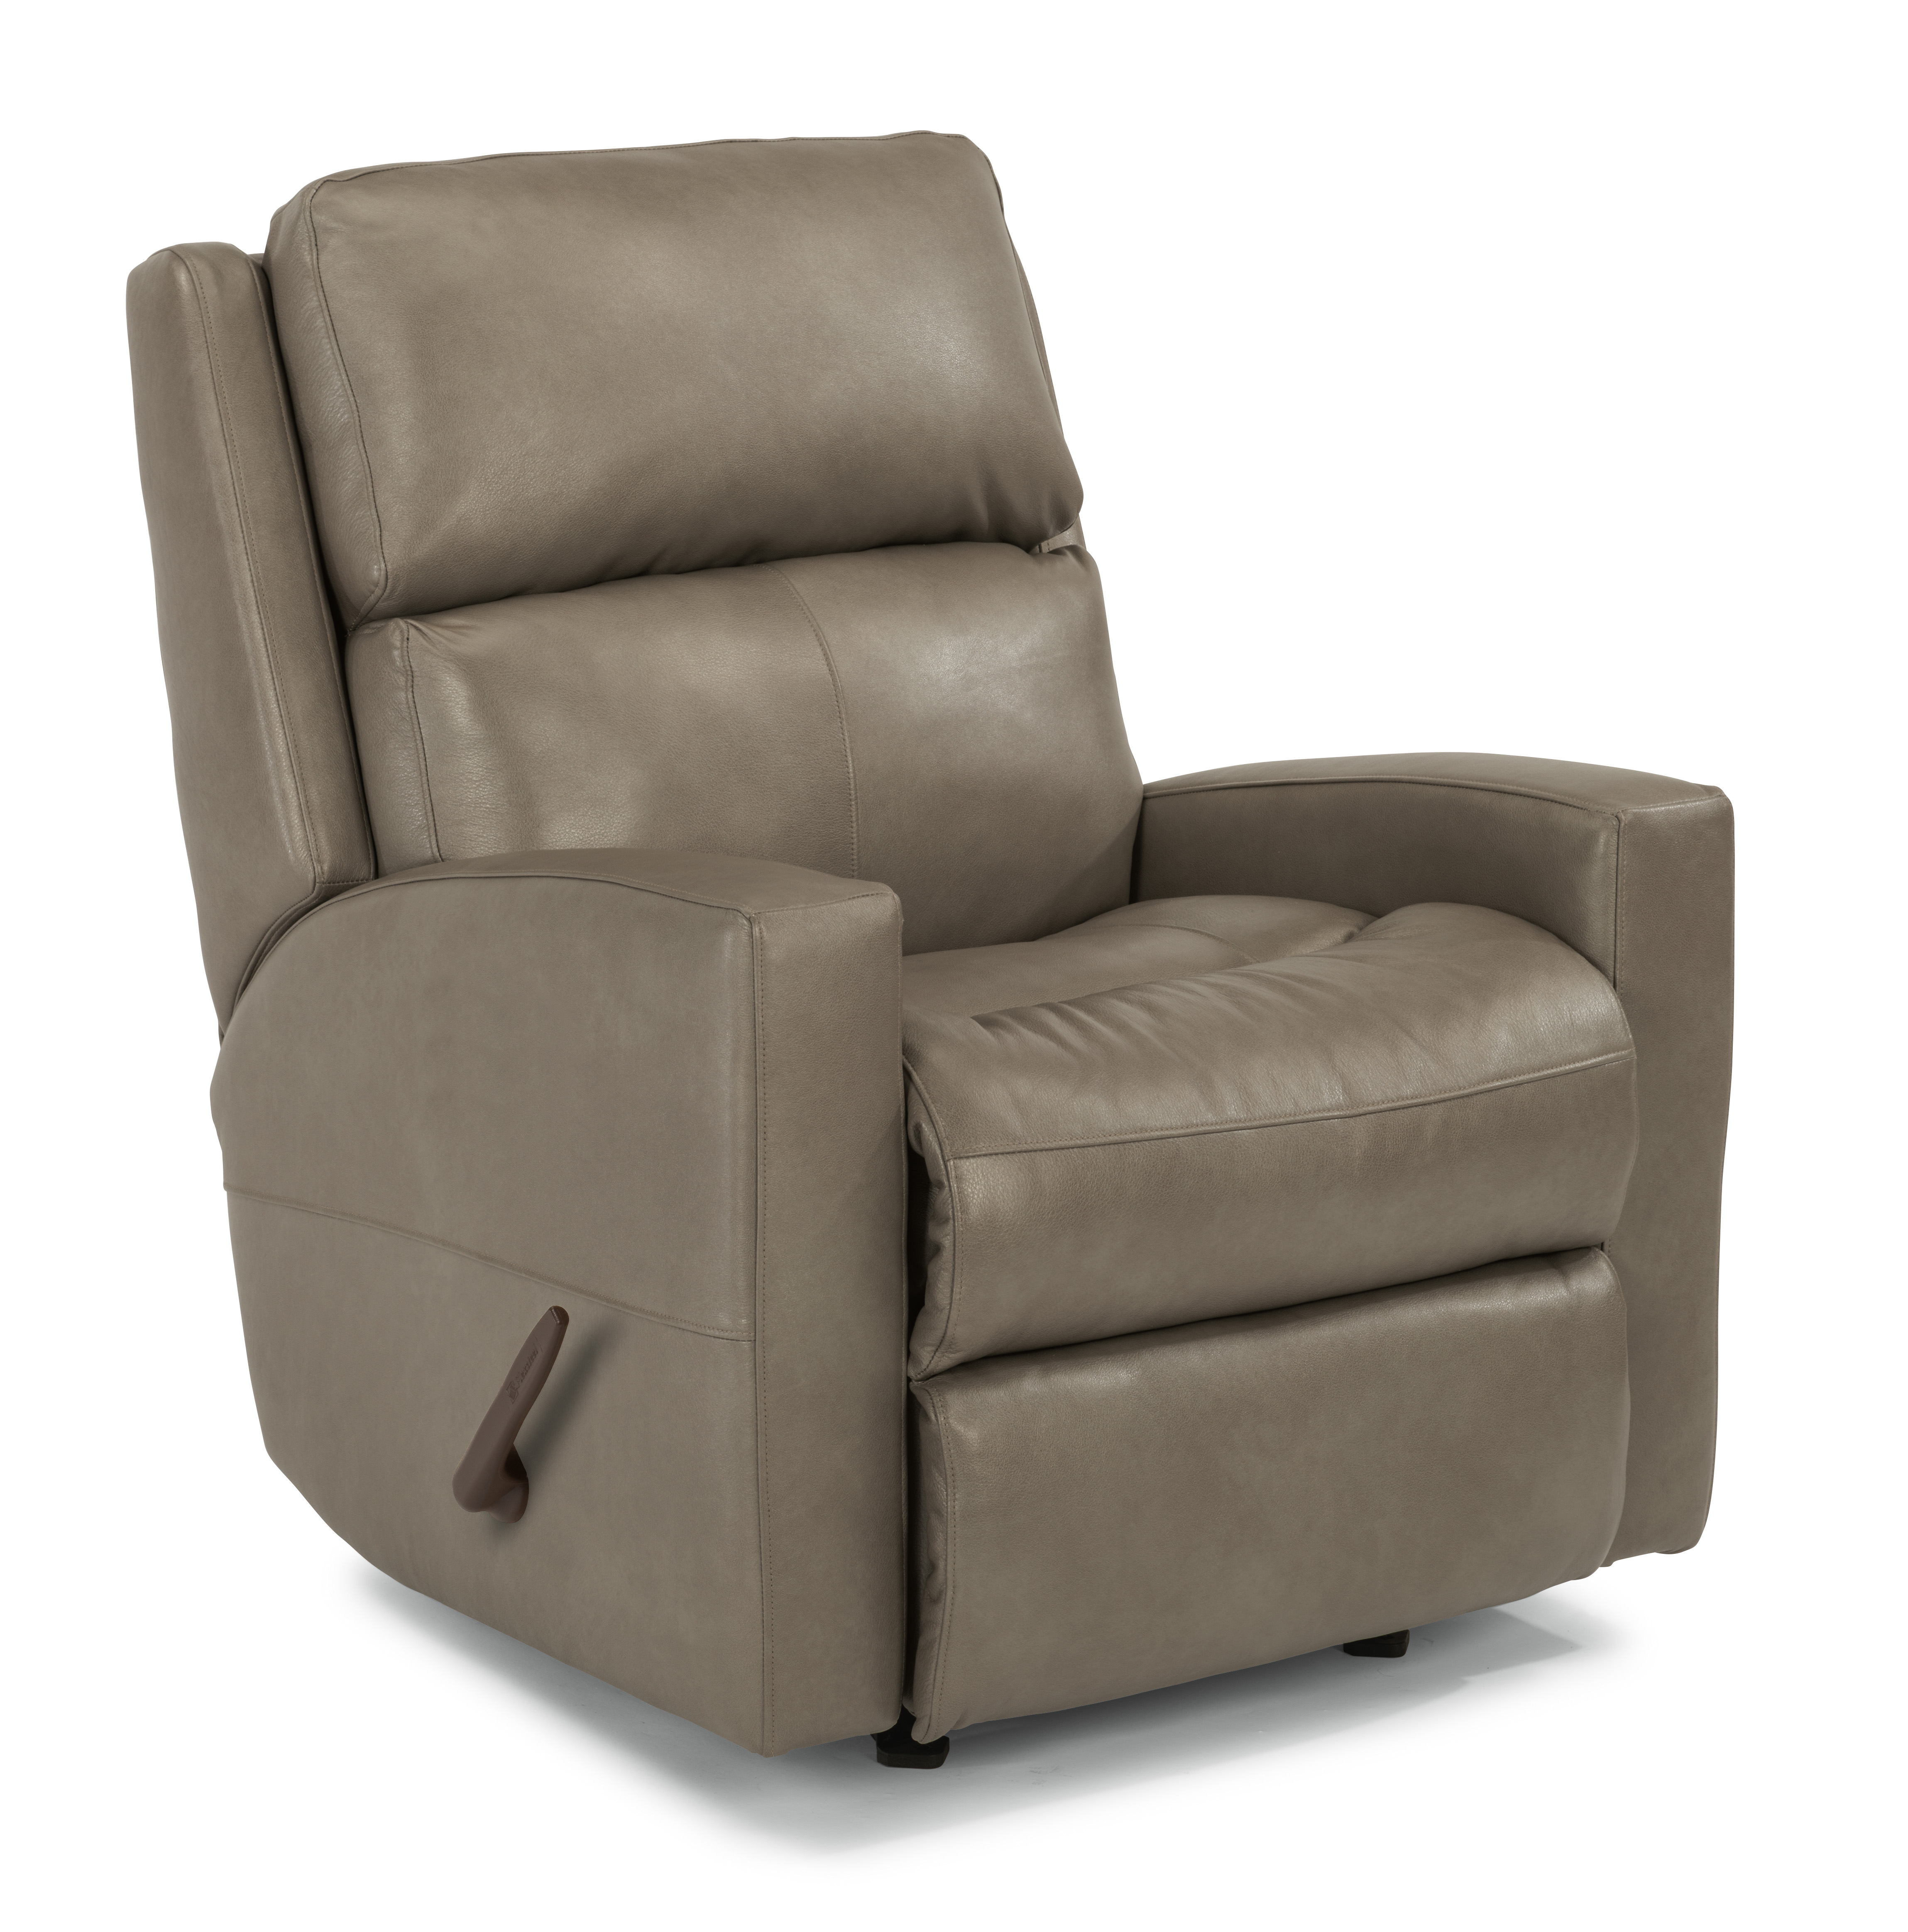 Catalina Leather Swivel Gliding Recliner By Flexsteel Furniture The Furniture Mall